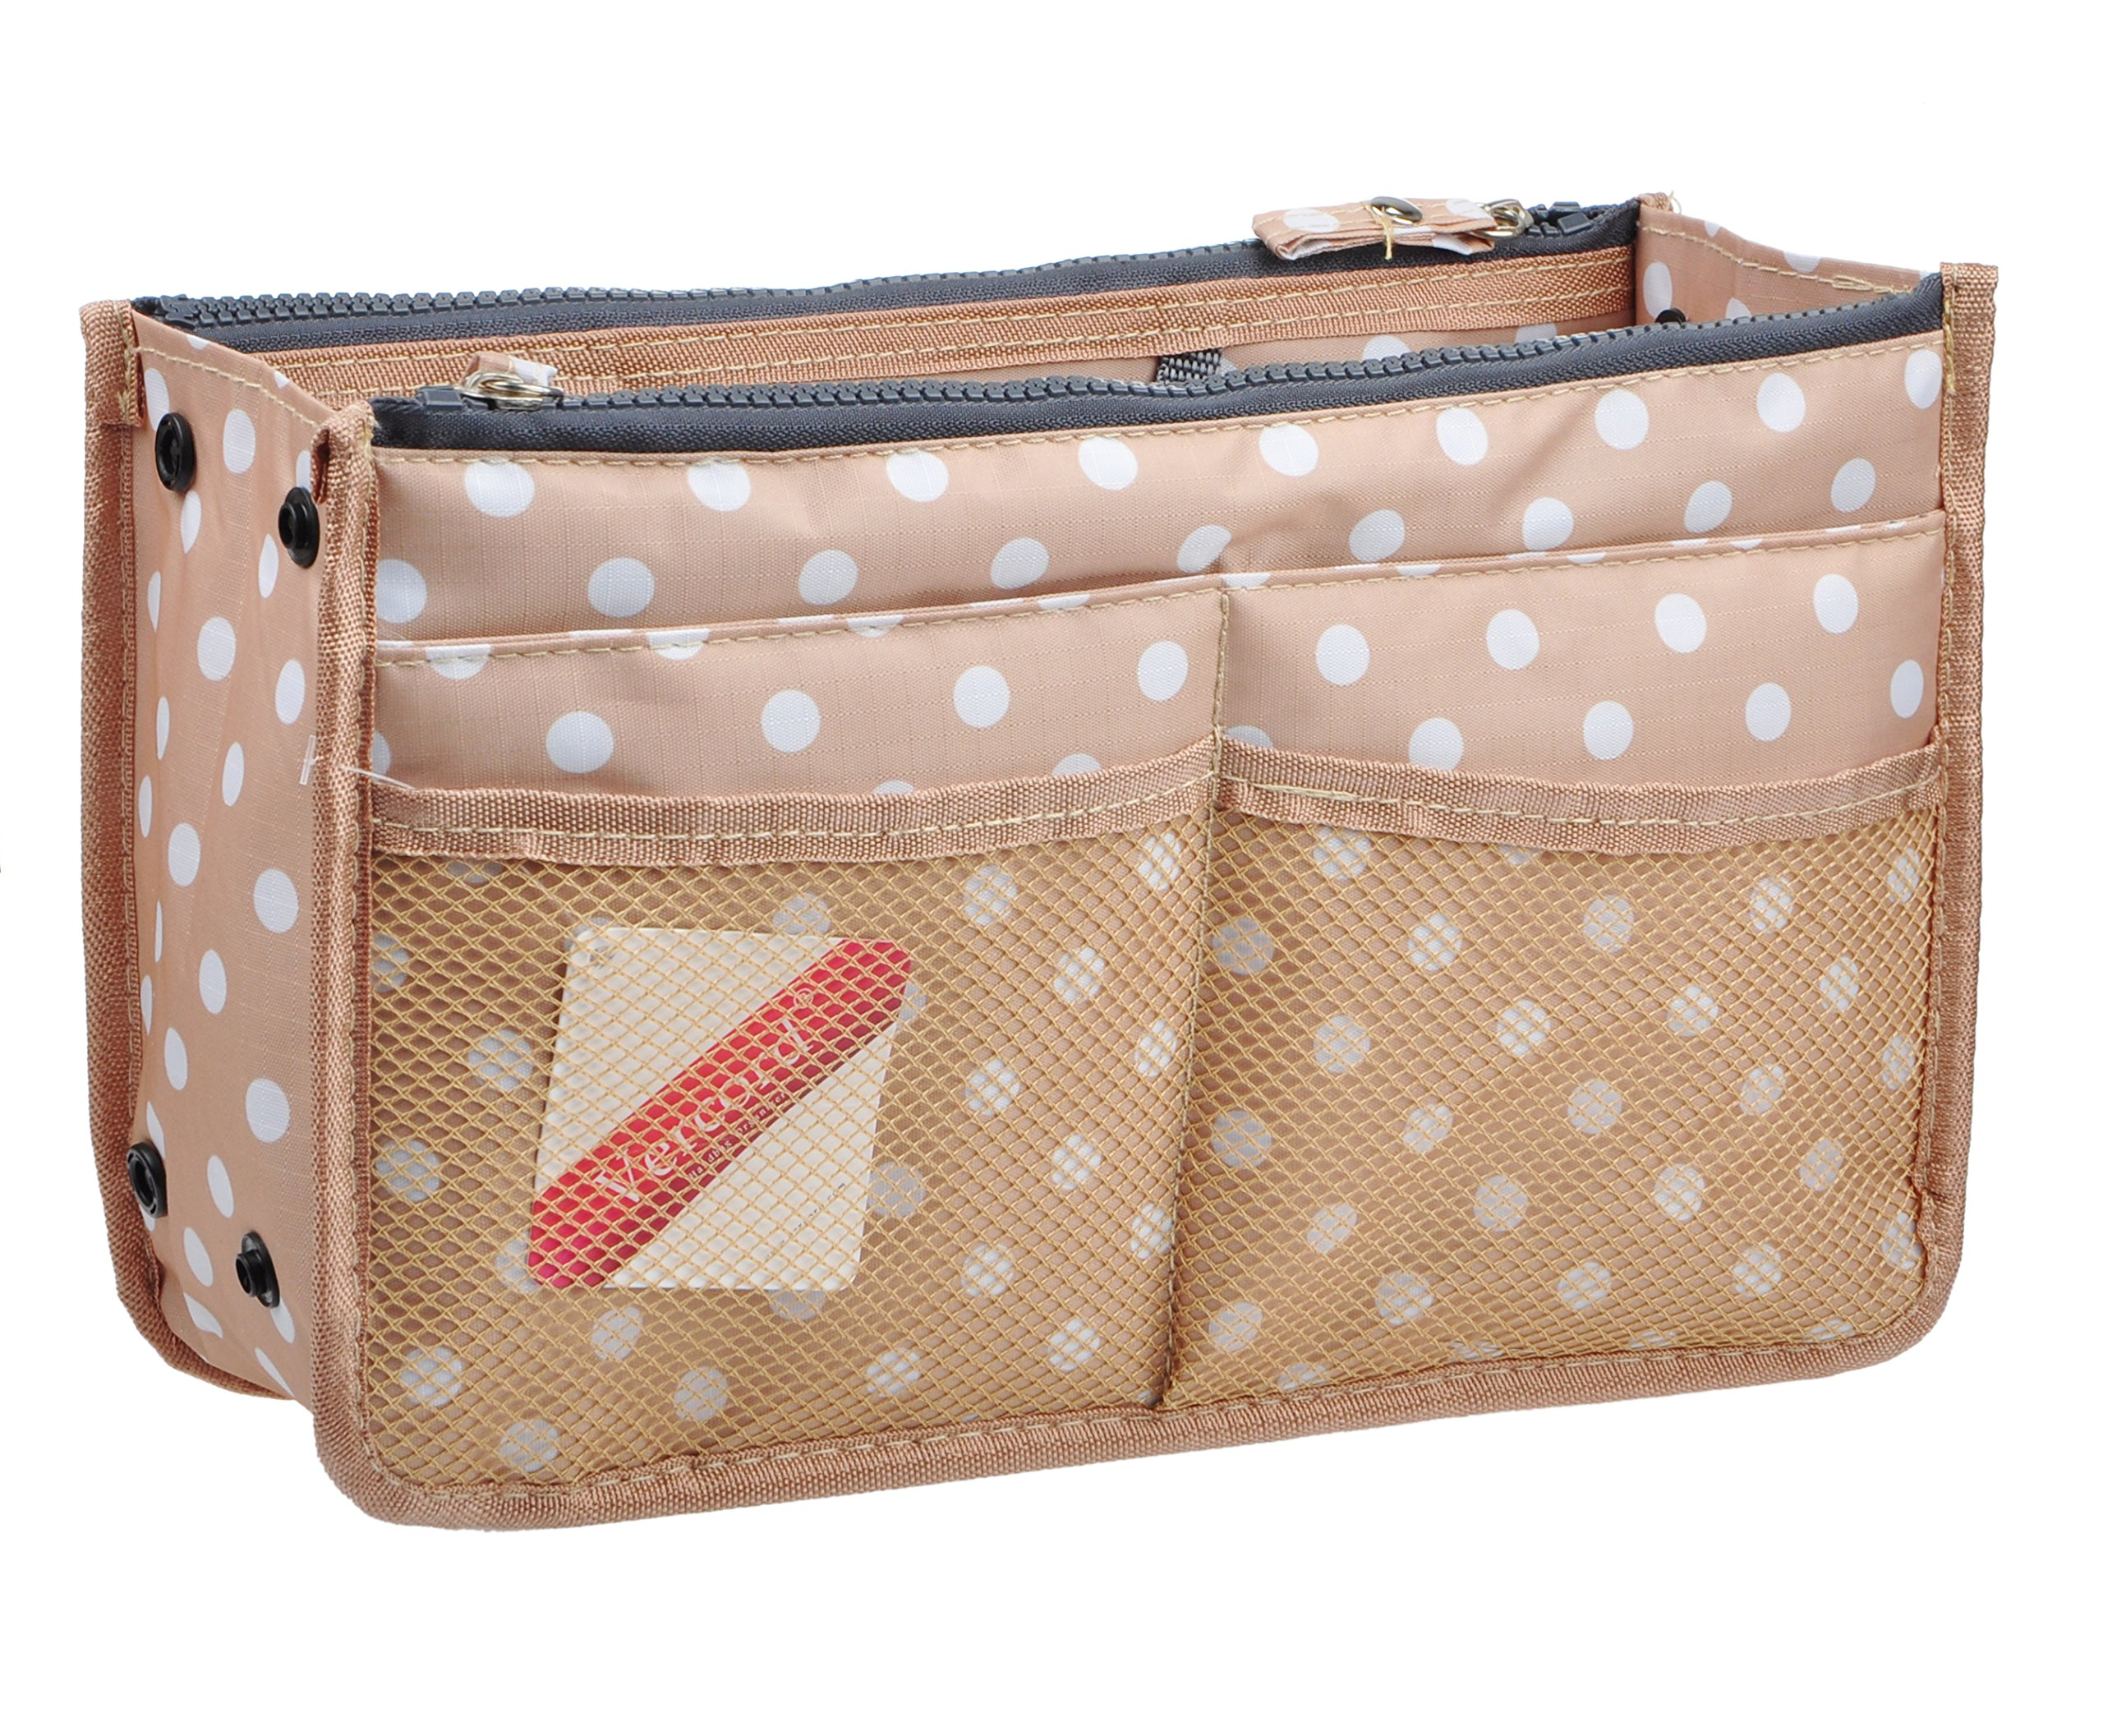 Vercord Updated Purse Handbag Organizer Insert Liner Bag in Bag 13 Pockets 3 Size, Beige Dot S